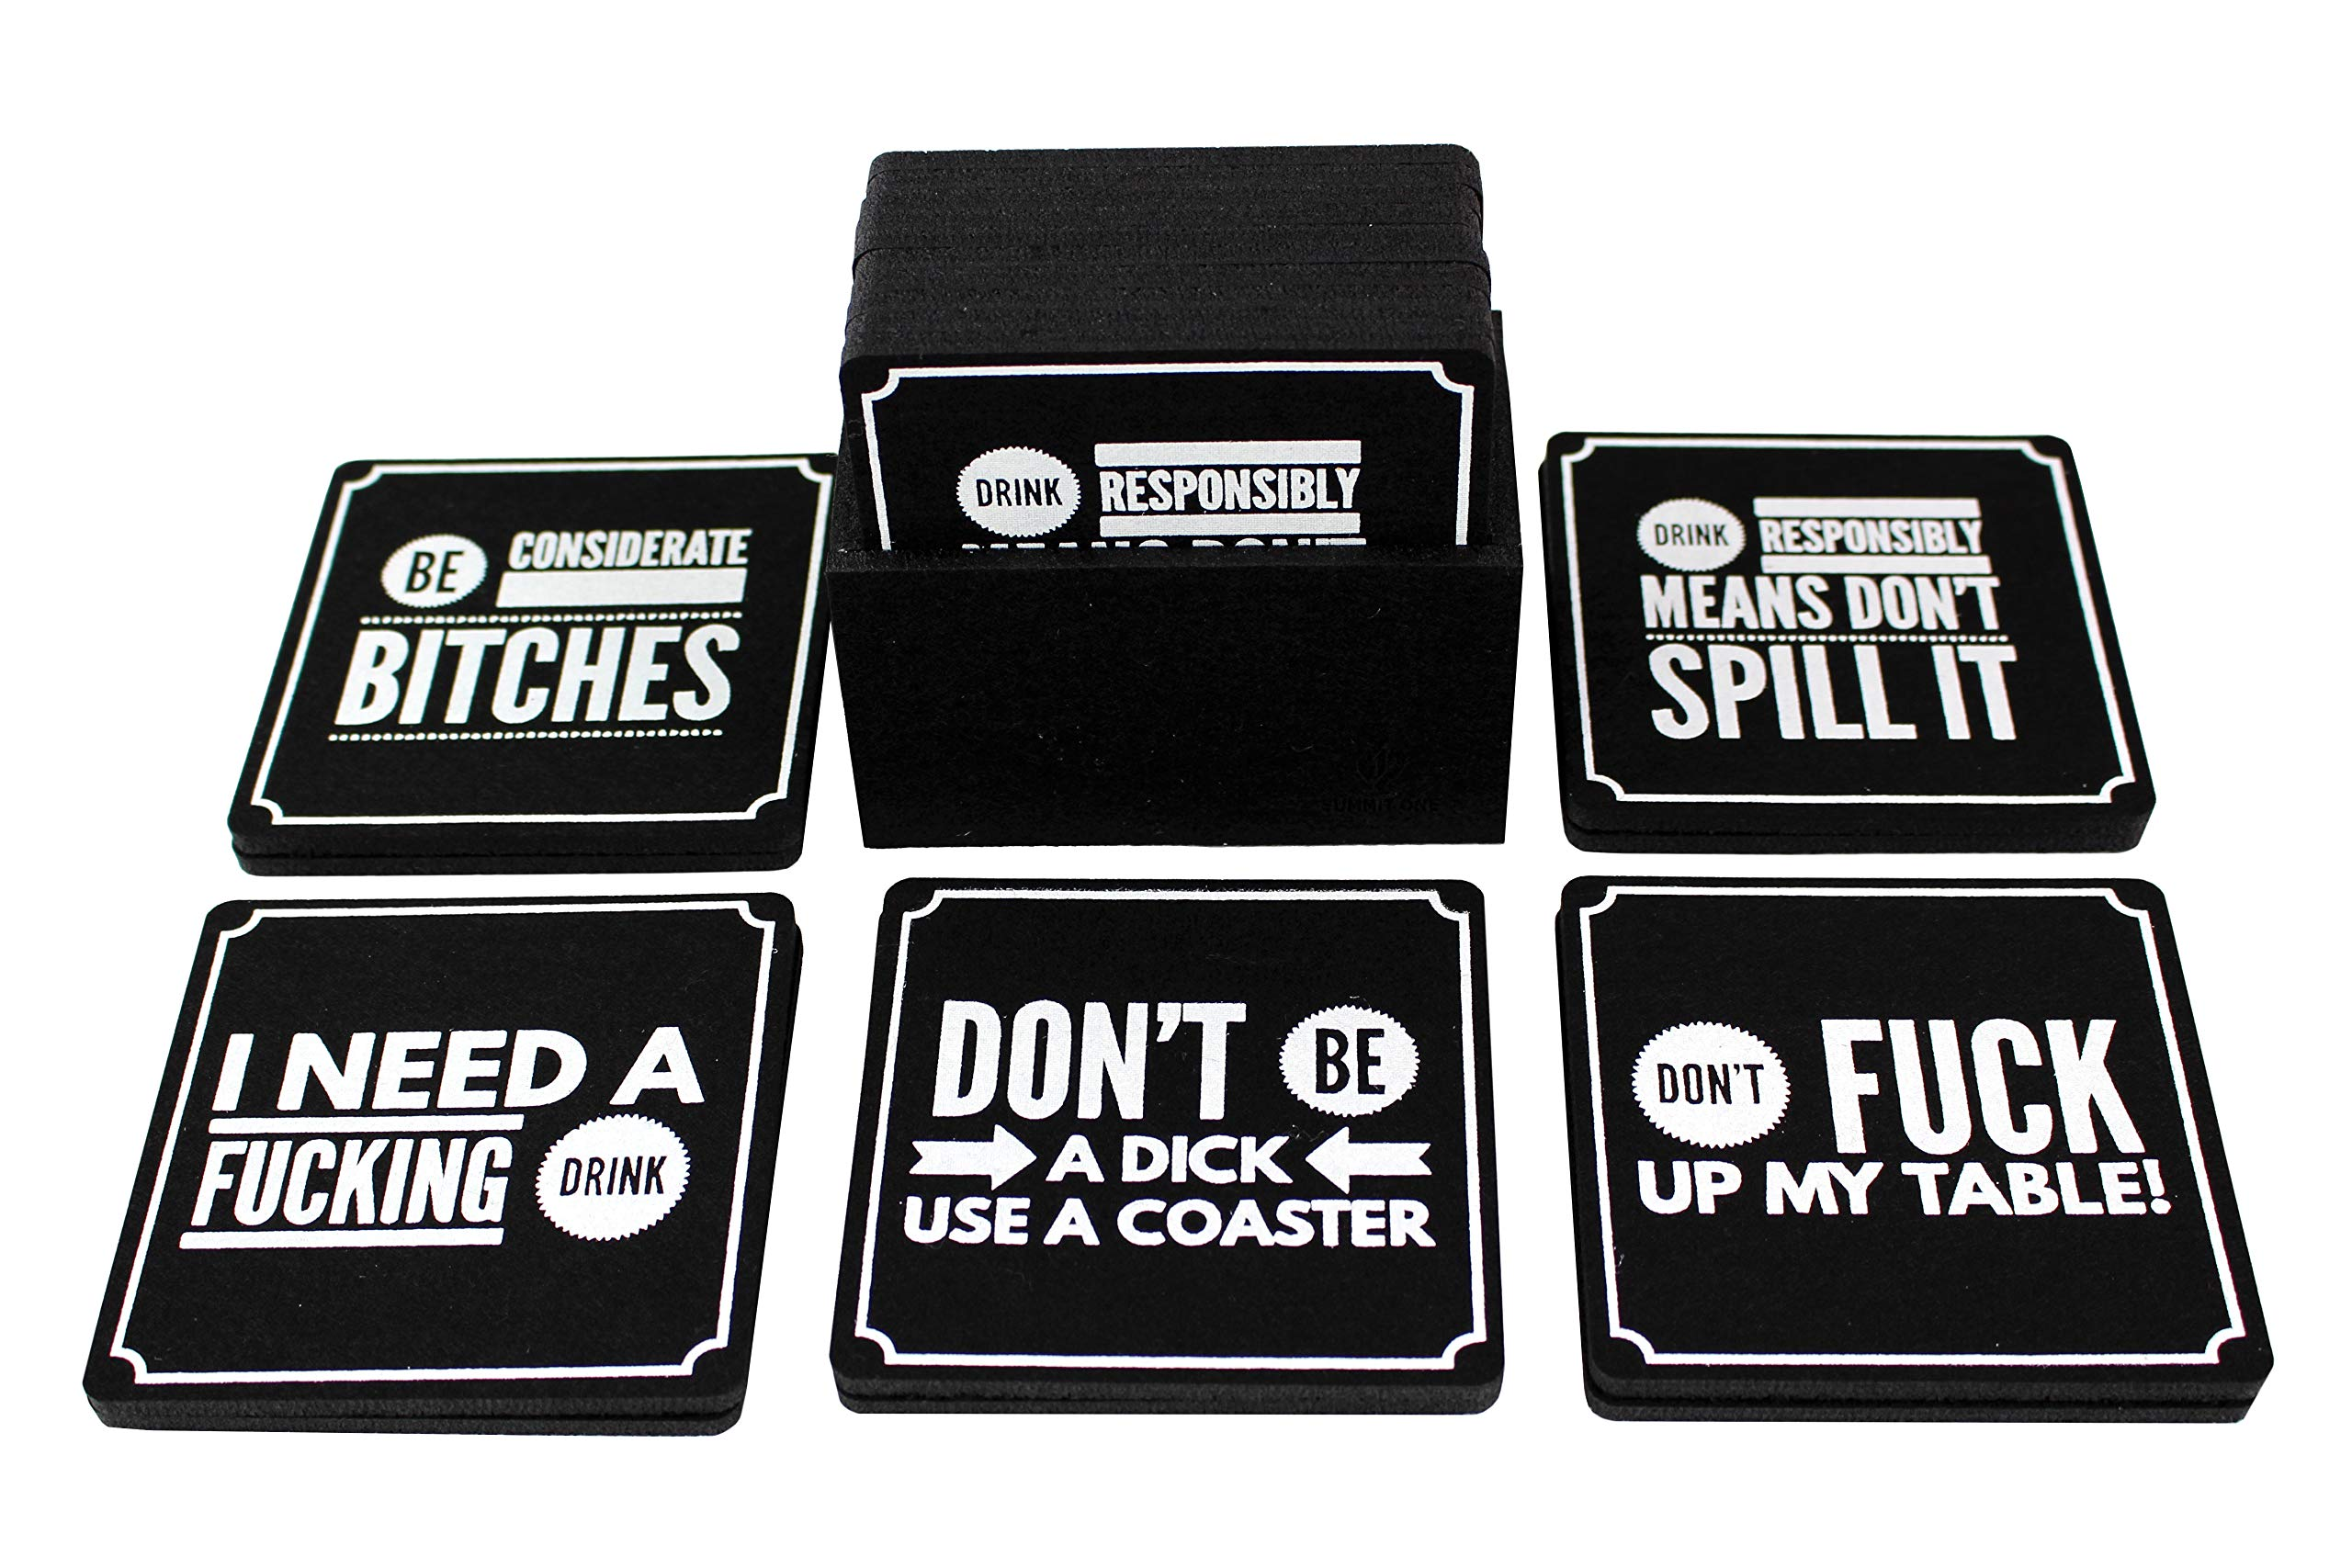 Summit One Funny Coasters for Drinks, Set of 10 (4 x 4 Inch, 5mm Thick) Premium Absorbent Felt Drink Coasters with Hilarious Quotes - Home Decor Gag Gifts for Women, Men - With Coaster Holder